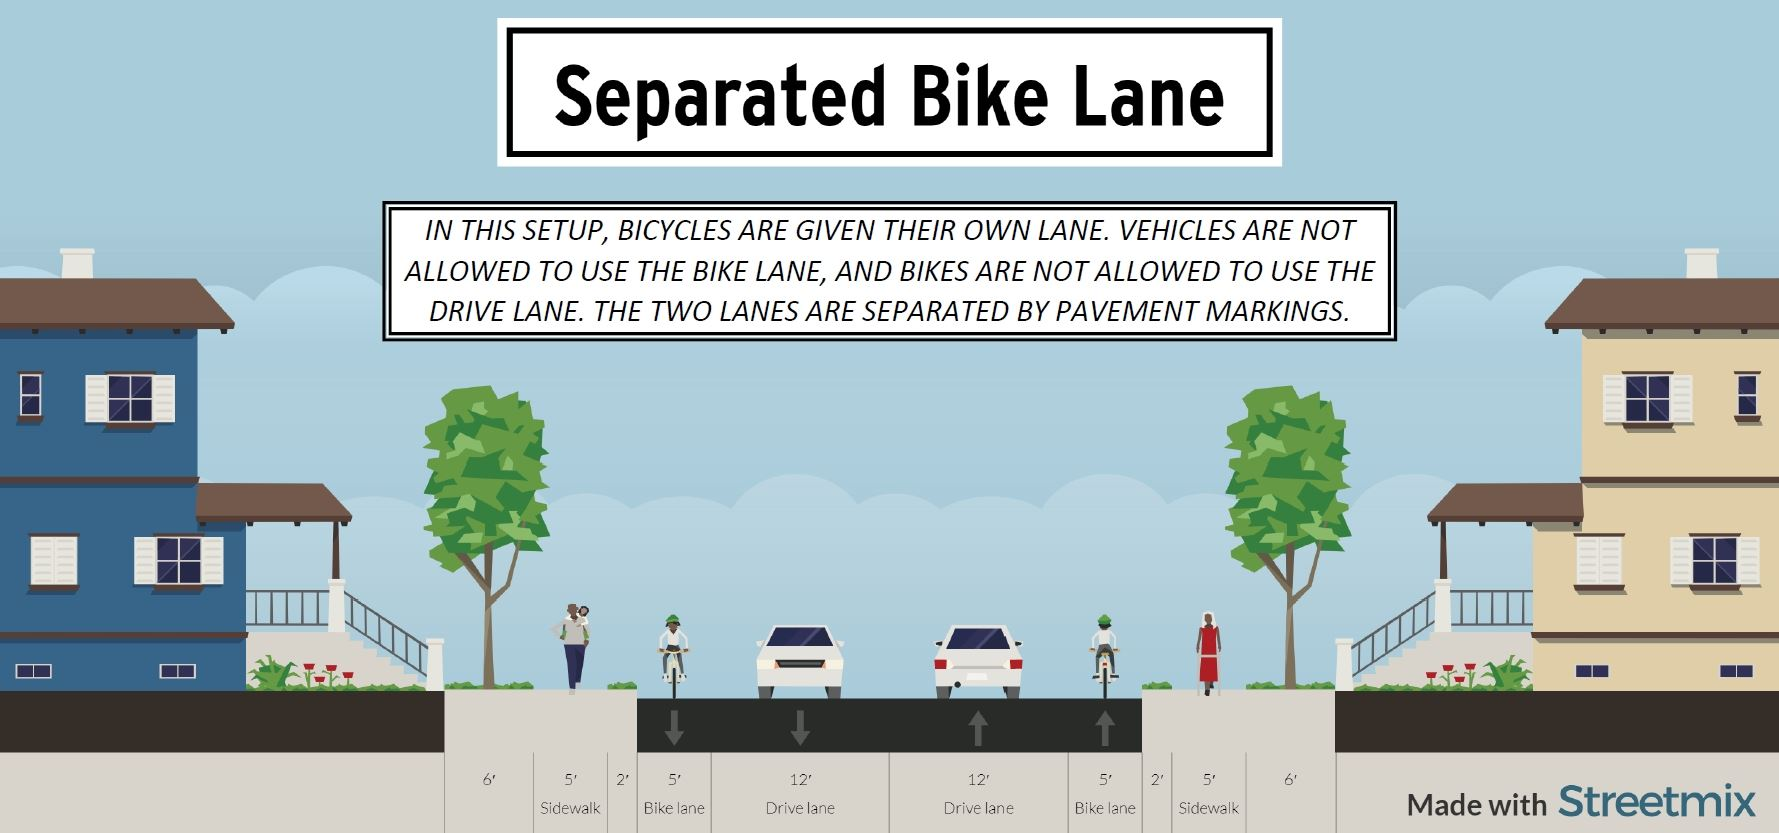 Separated Bike Lane